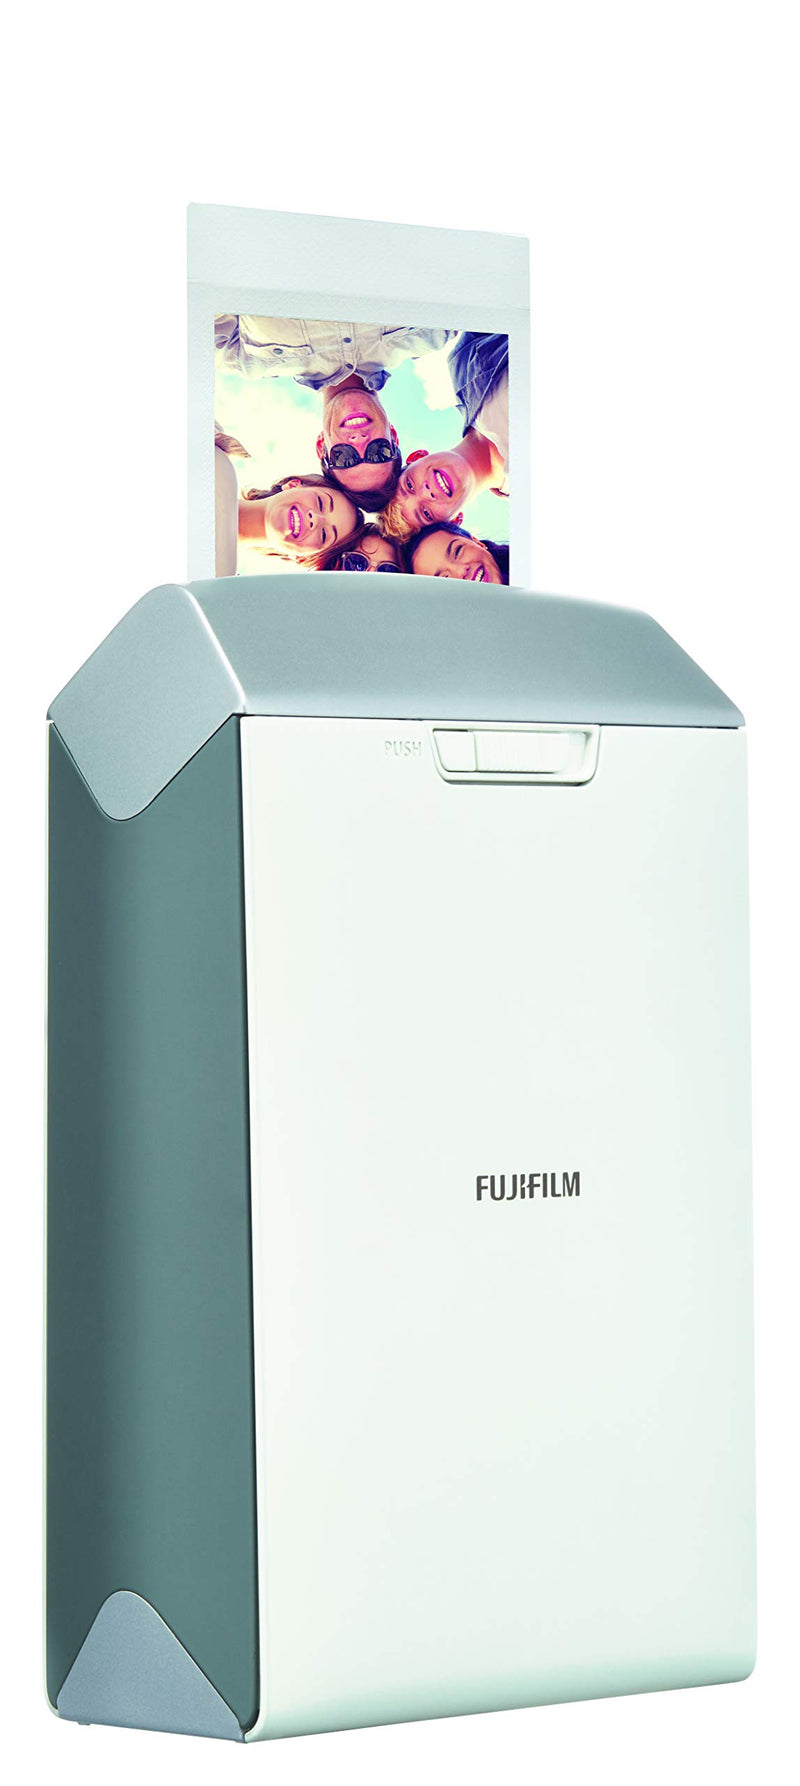 Fujifilm INSTAX Share SP-2 Smart Phone Printer w/Monochrome Film & Shiny Star Film - 20 Exposures Total